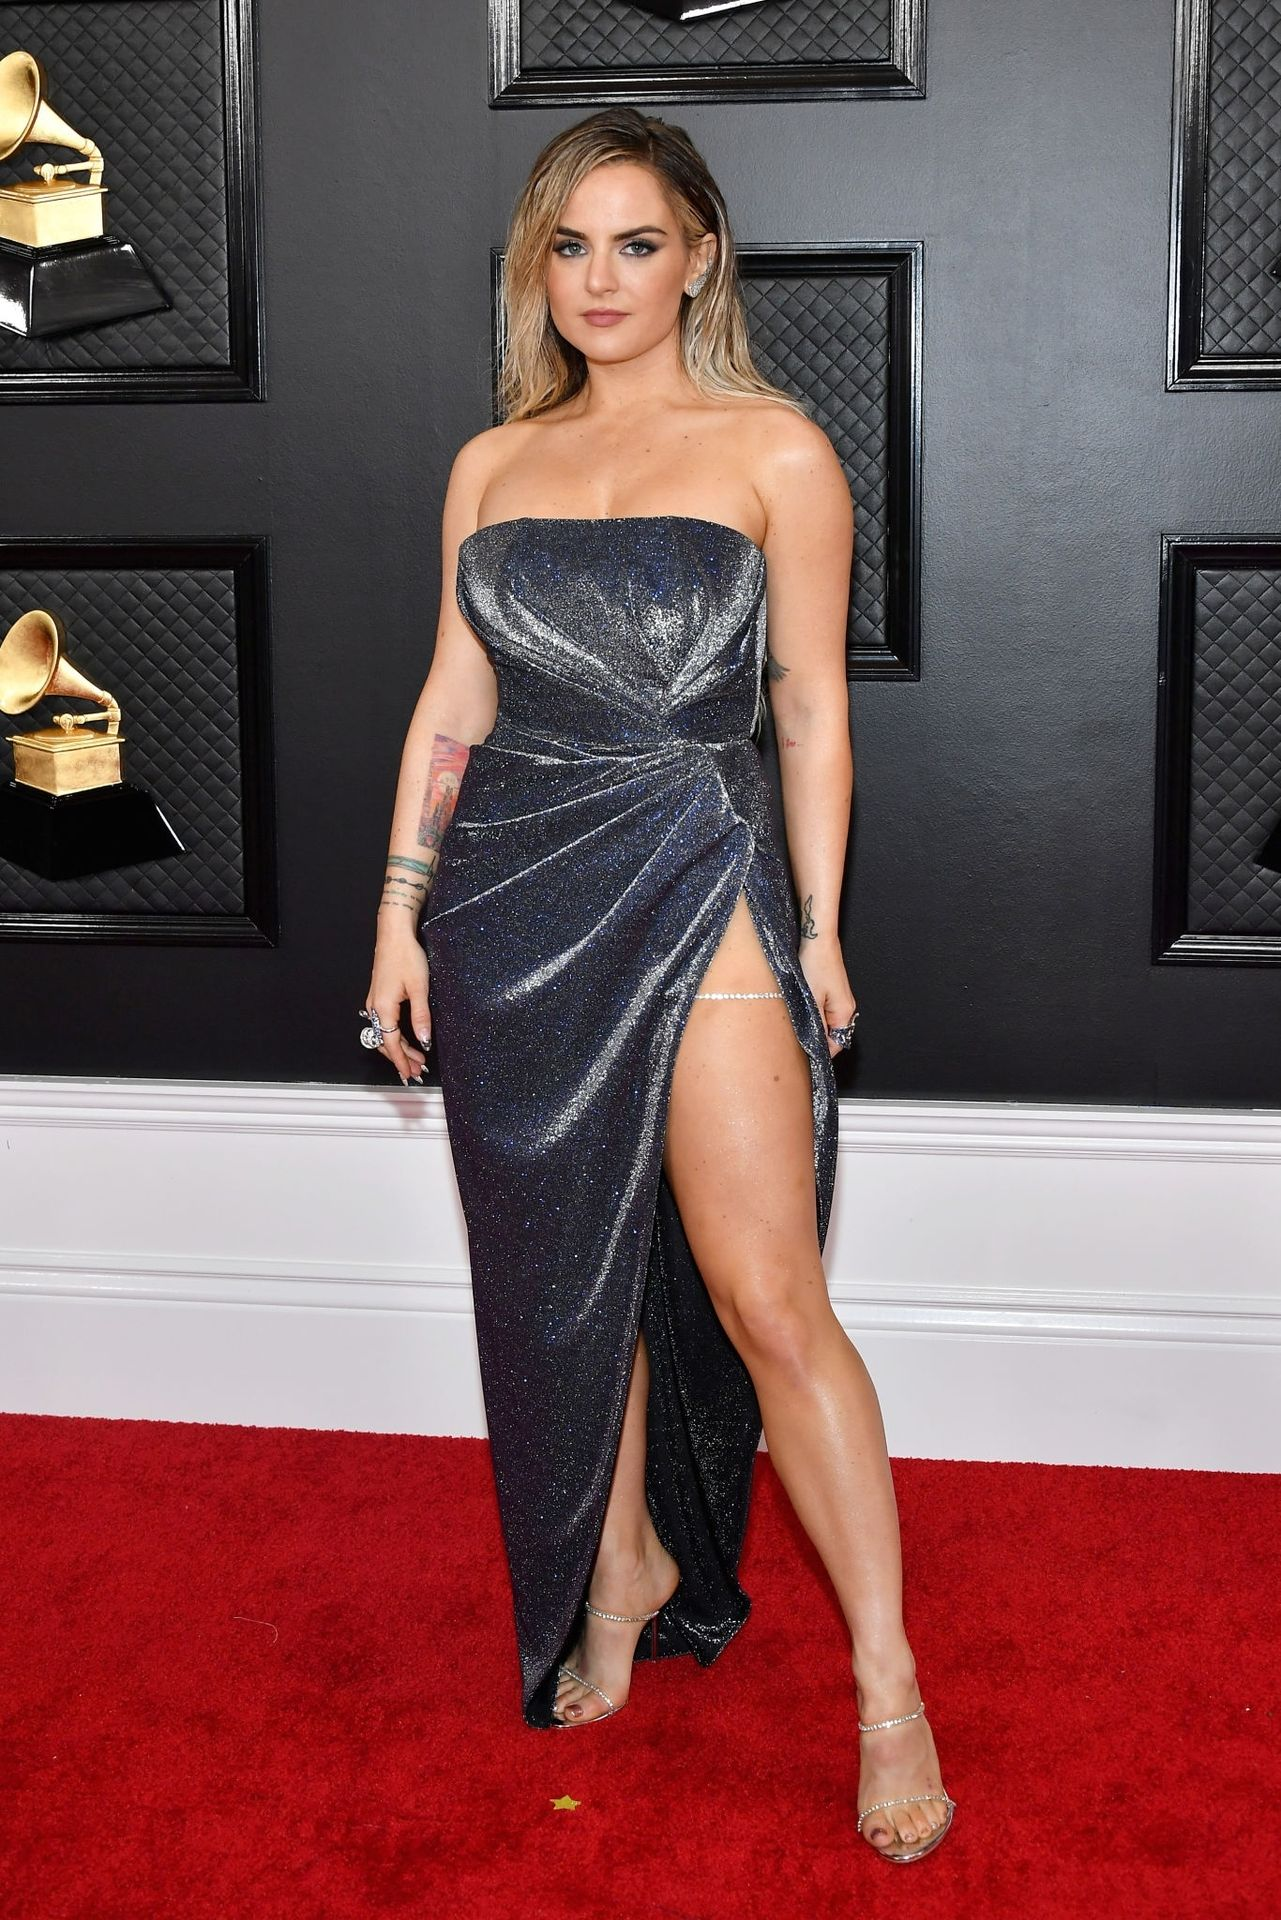 Jojo Shows Her Legs And Cleavage At The 62nd Annual Grammy Awards 0005